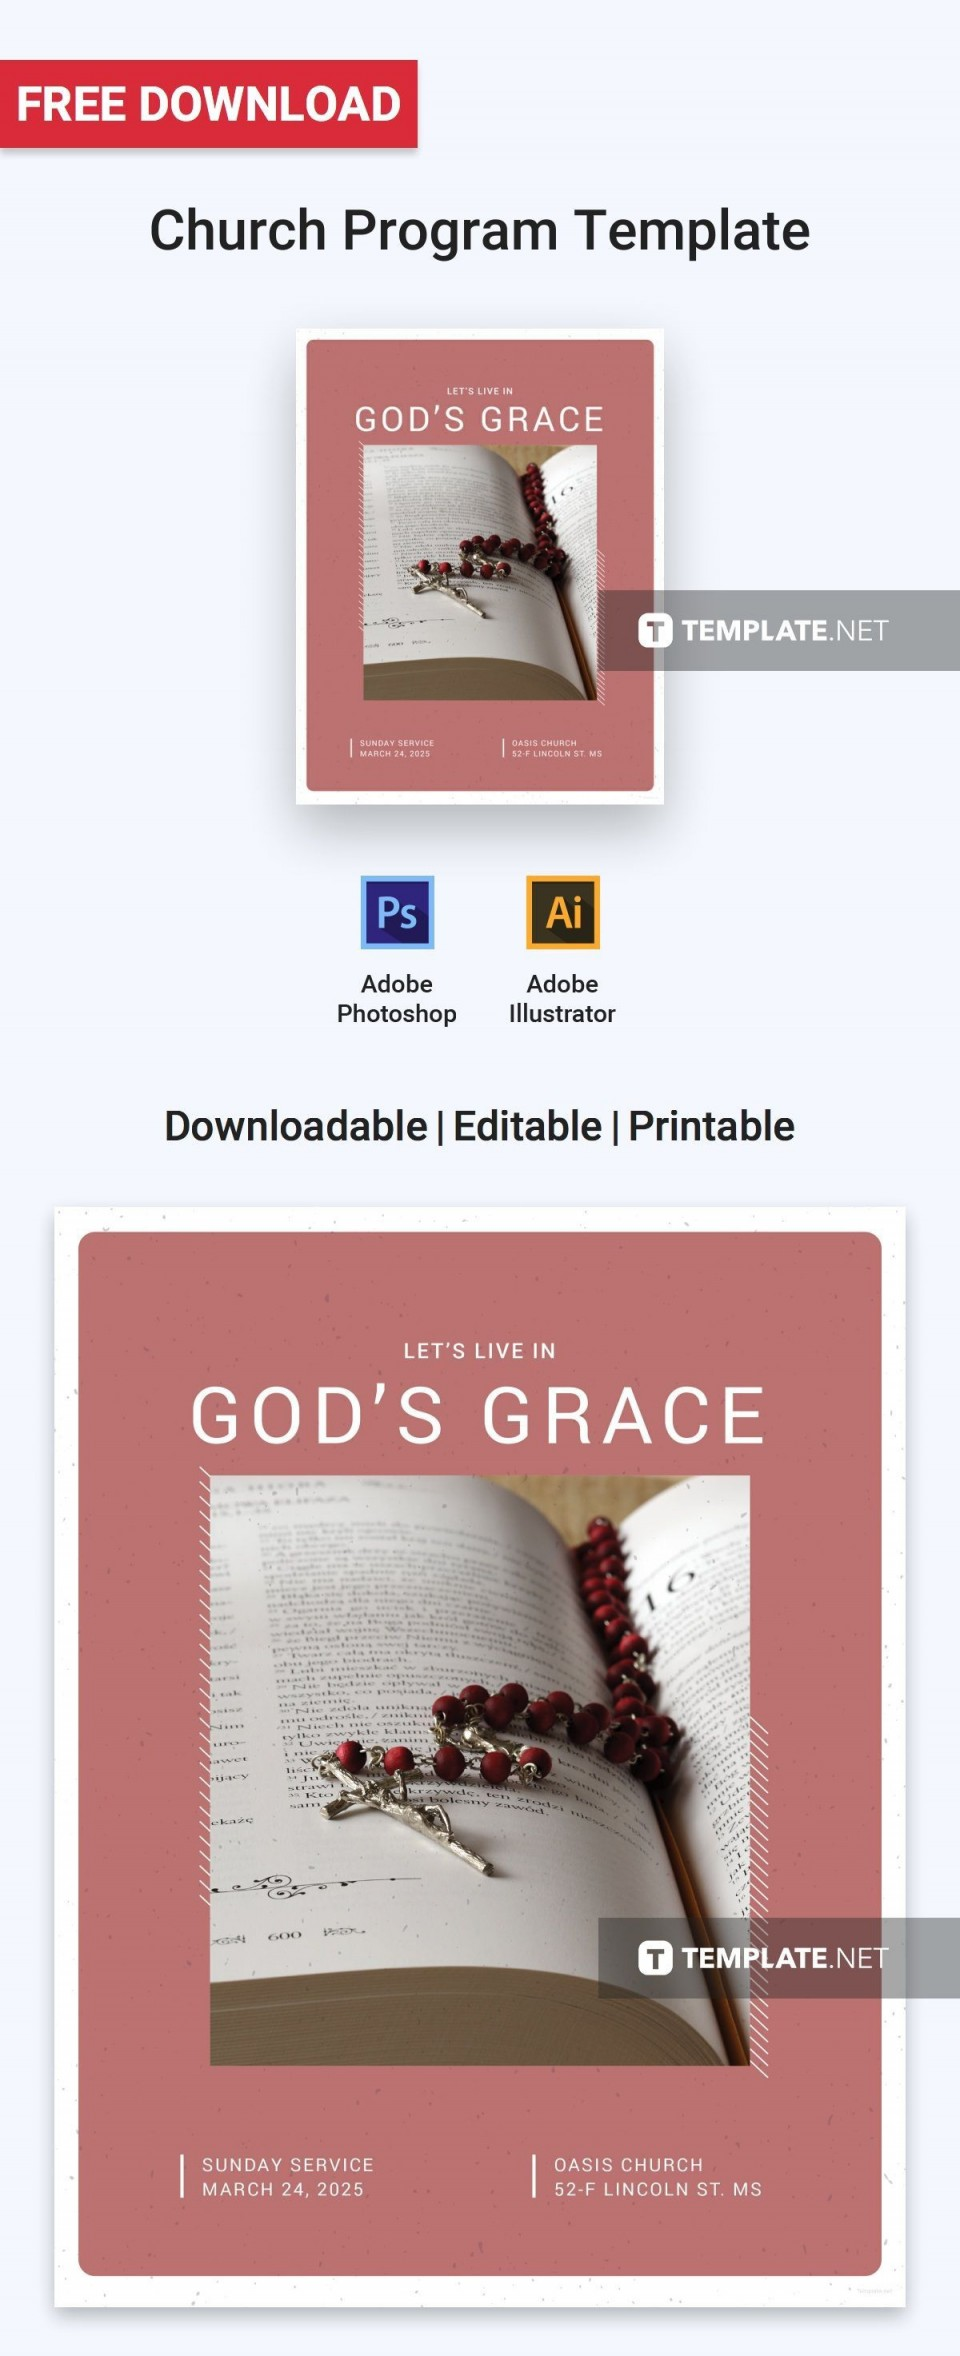 000 Unforgettable Free Church Program Template Design Image 960